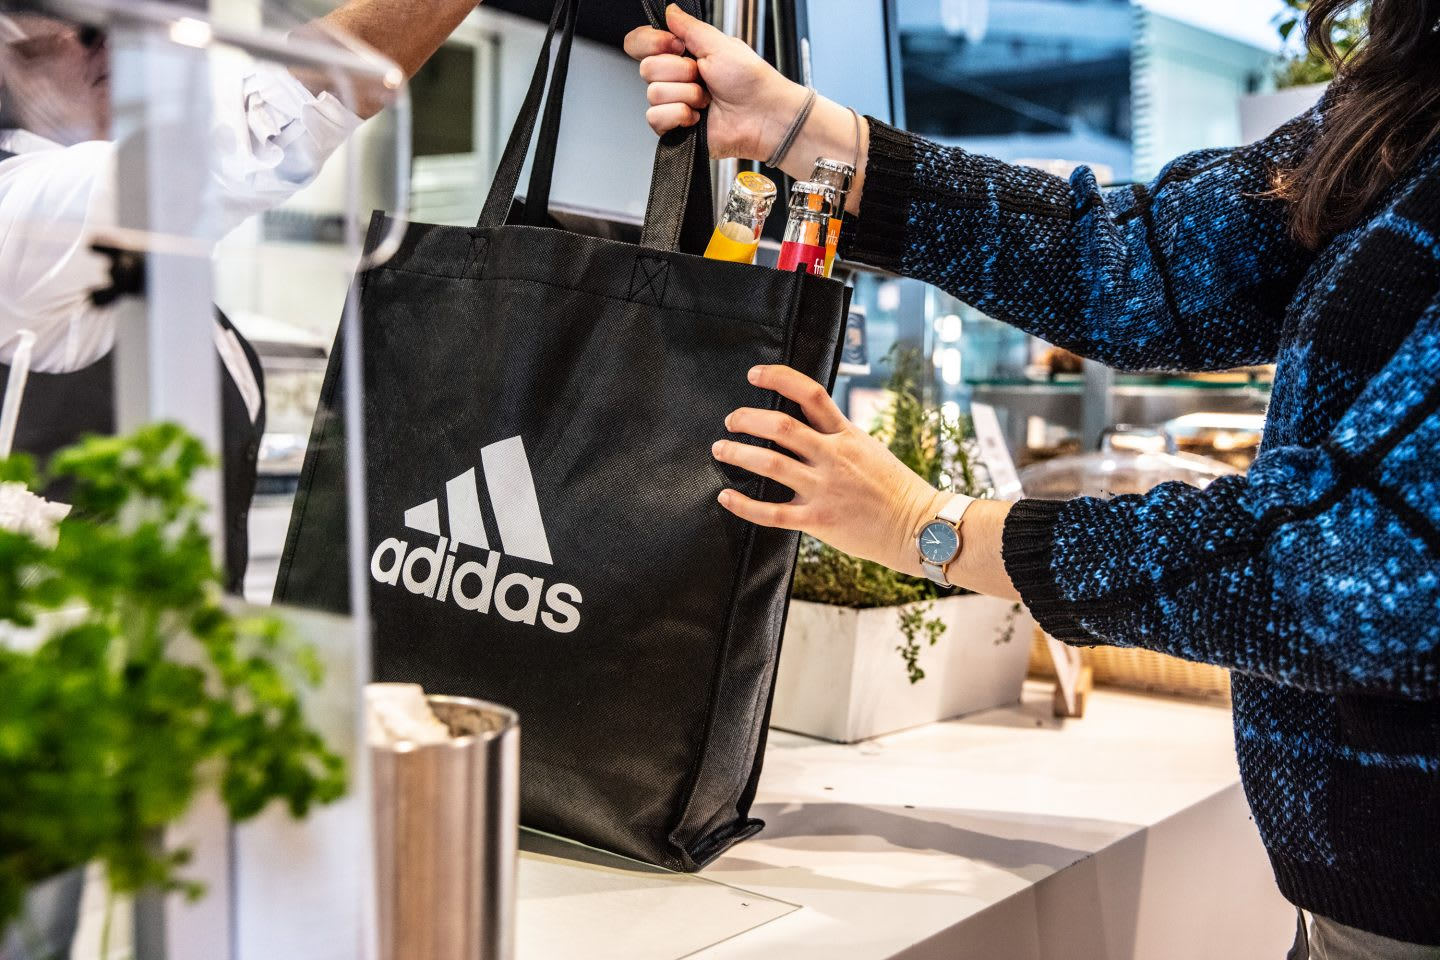 adidas reusable bag handed over the counter. avoid plastic, sustainability, habits and routines, inspiration, GamePlan A.